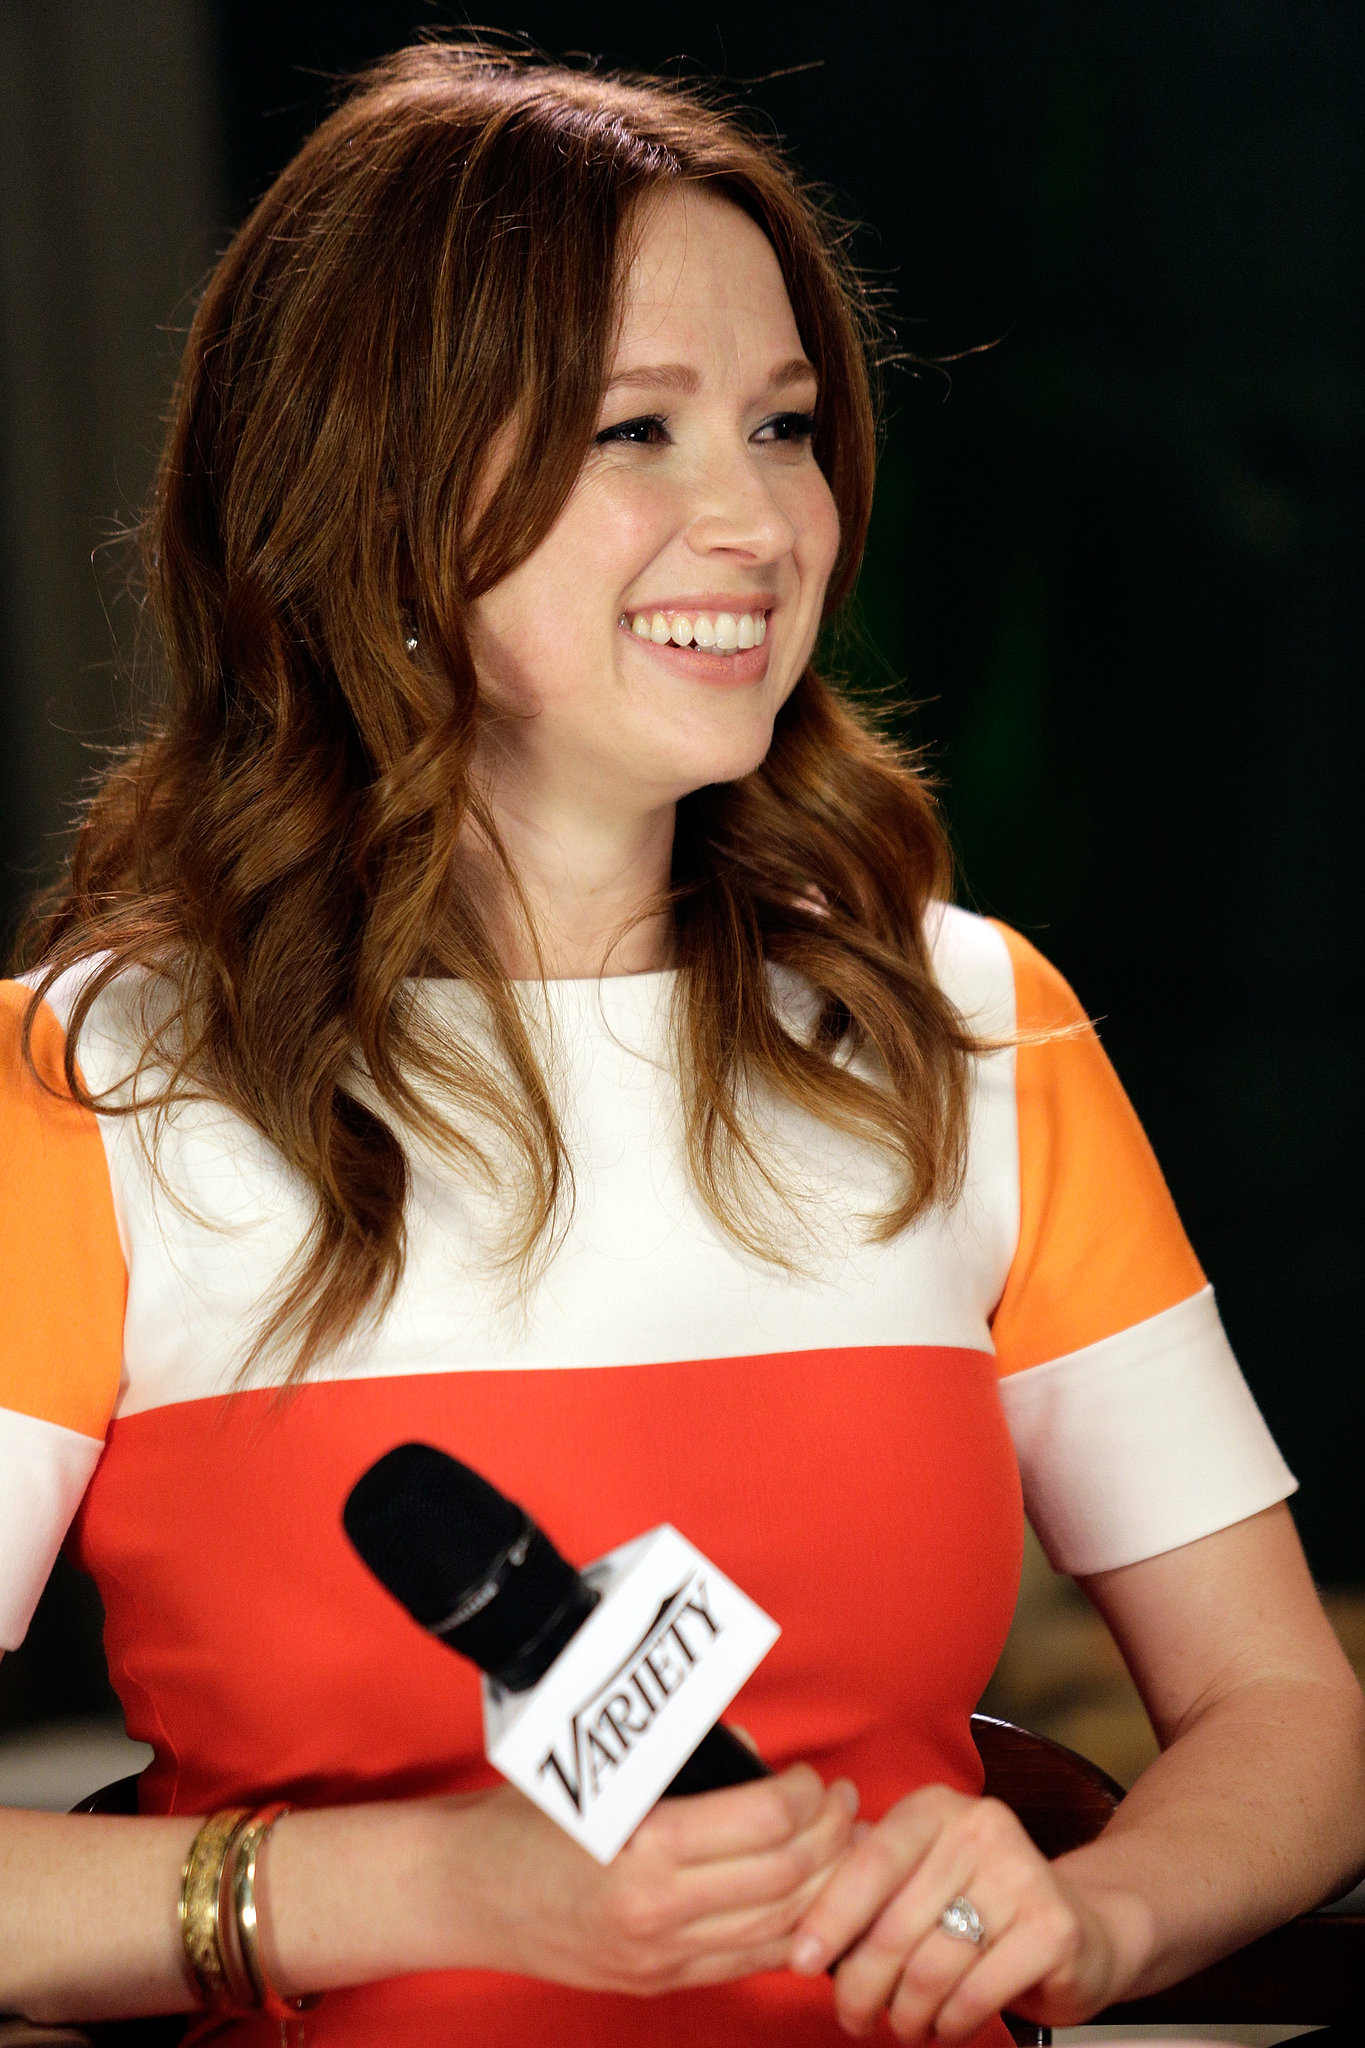 The Office star Ellie Kemper looked darling with natural makeup, beachy waves, and a beautiful smile.